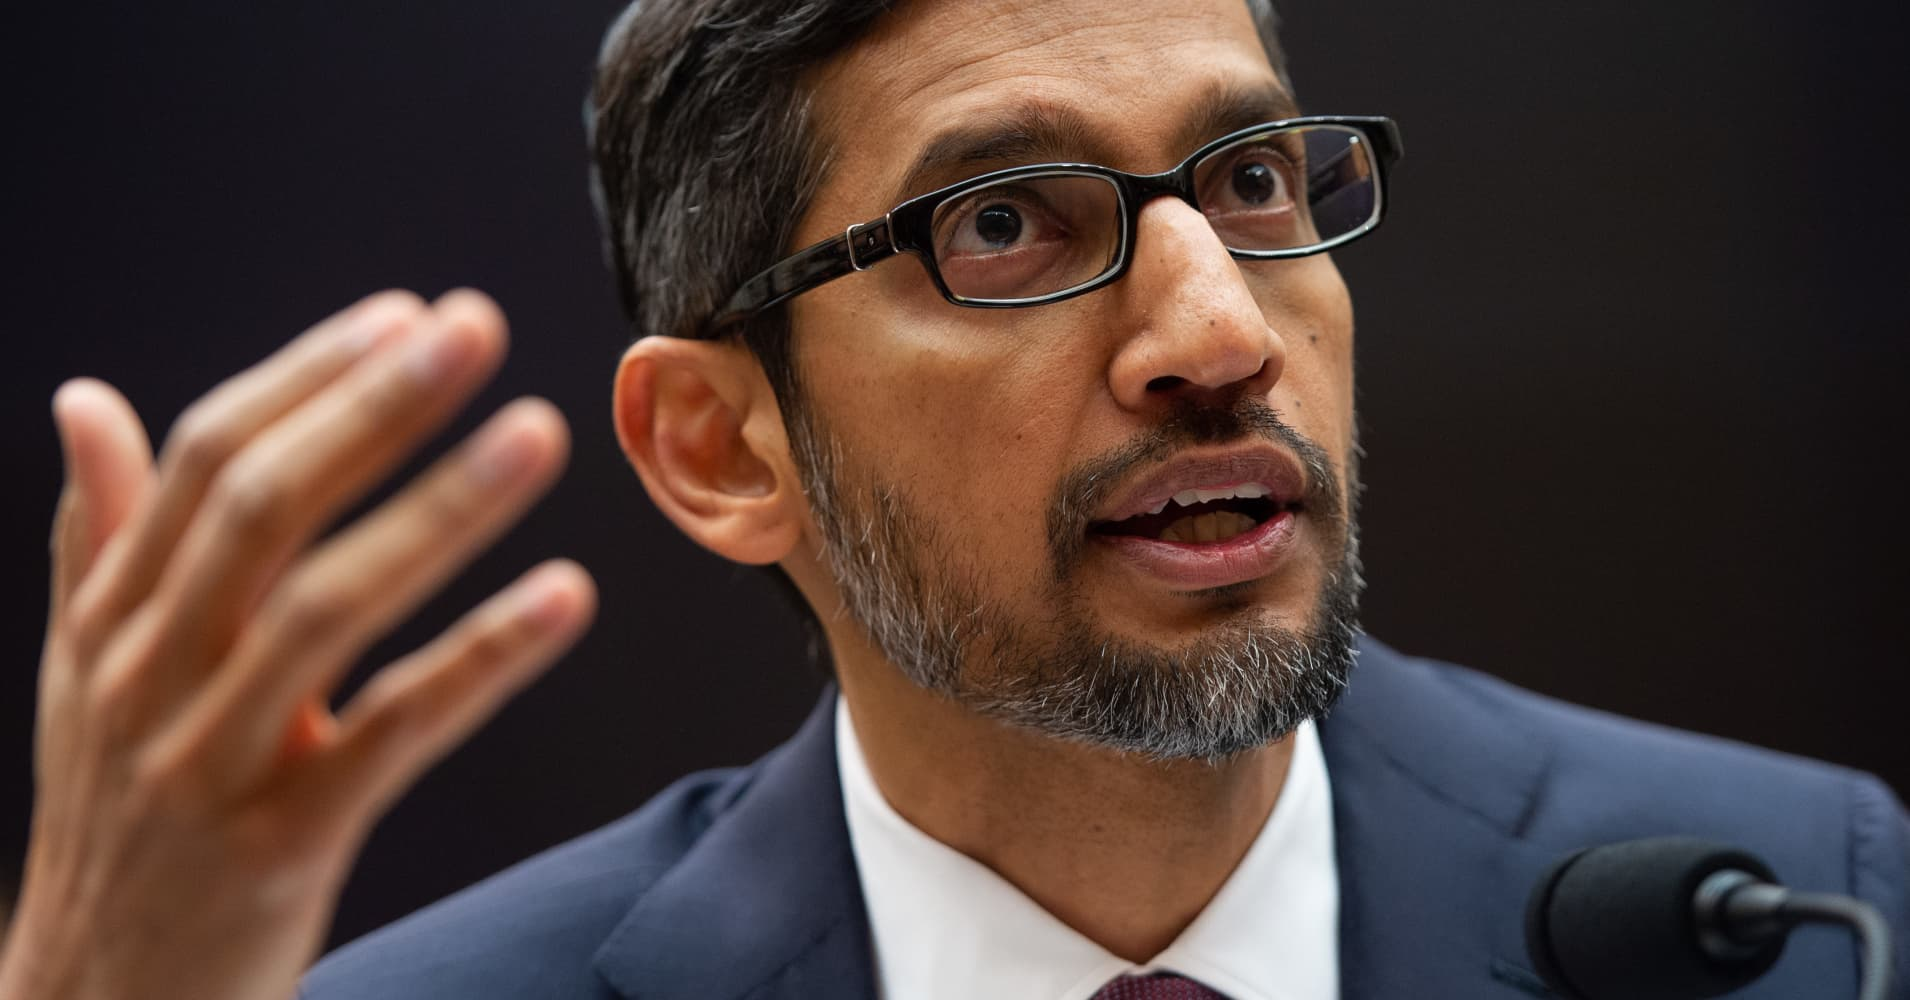 Trump met with Google CEO Sundar Pichai to discuss 'political fairness' and China